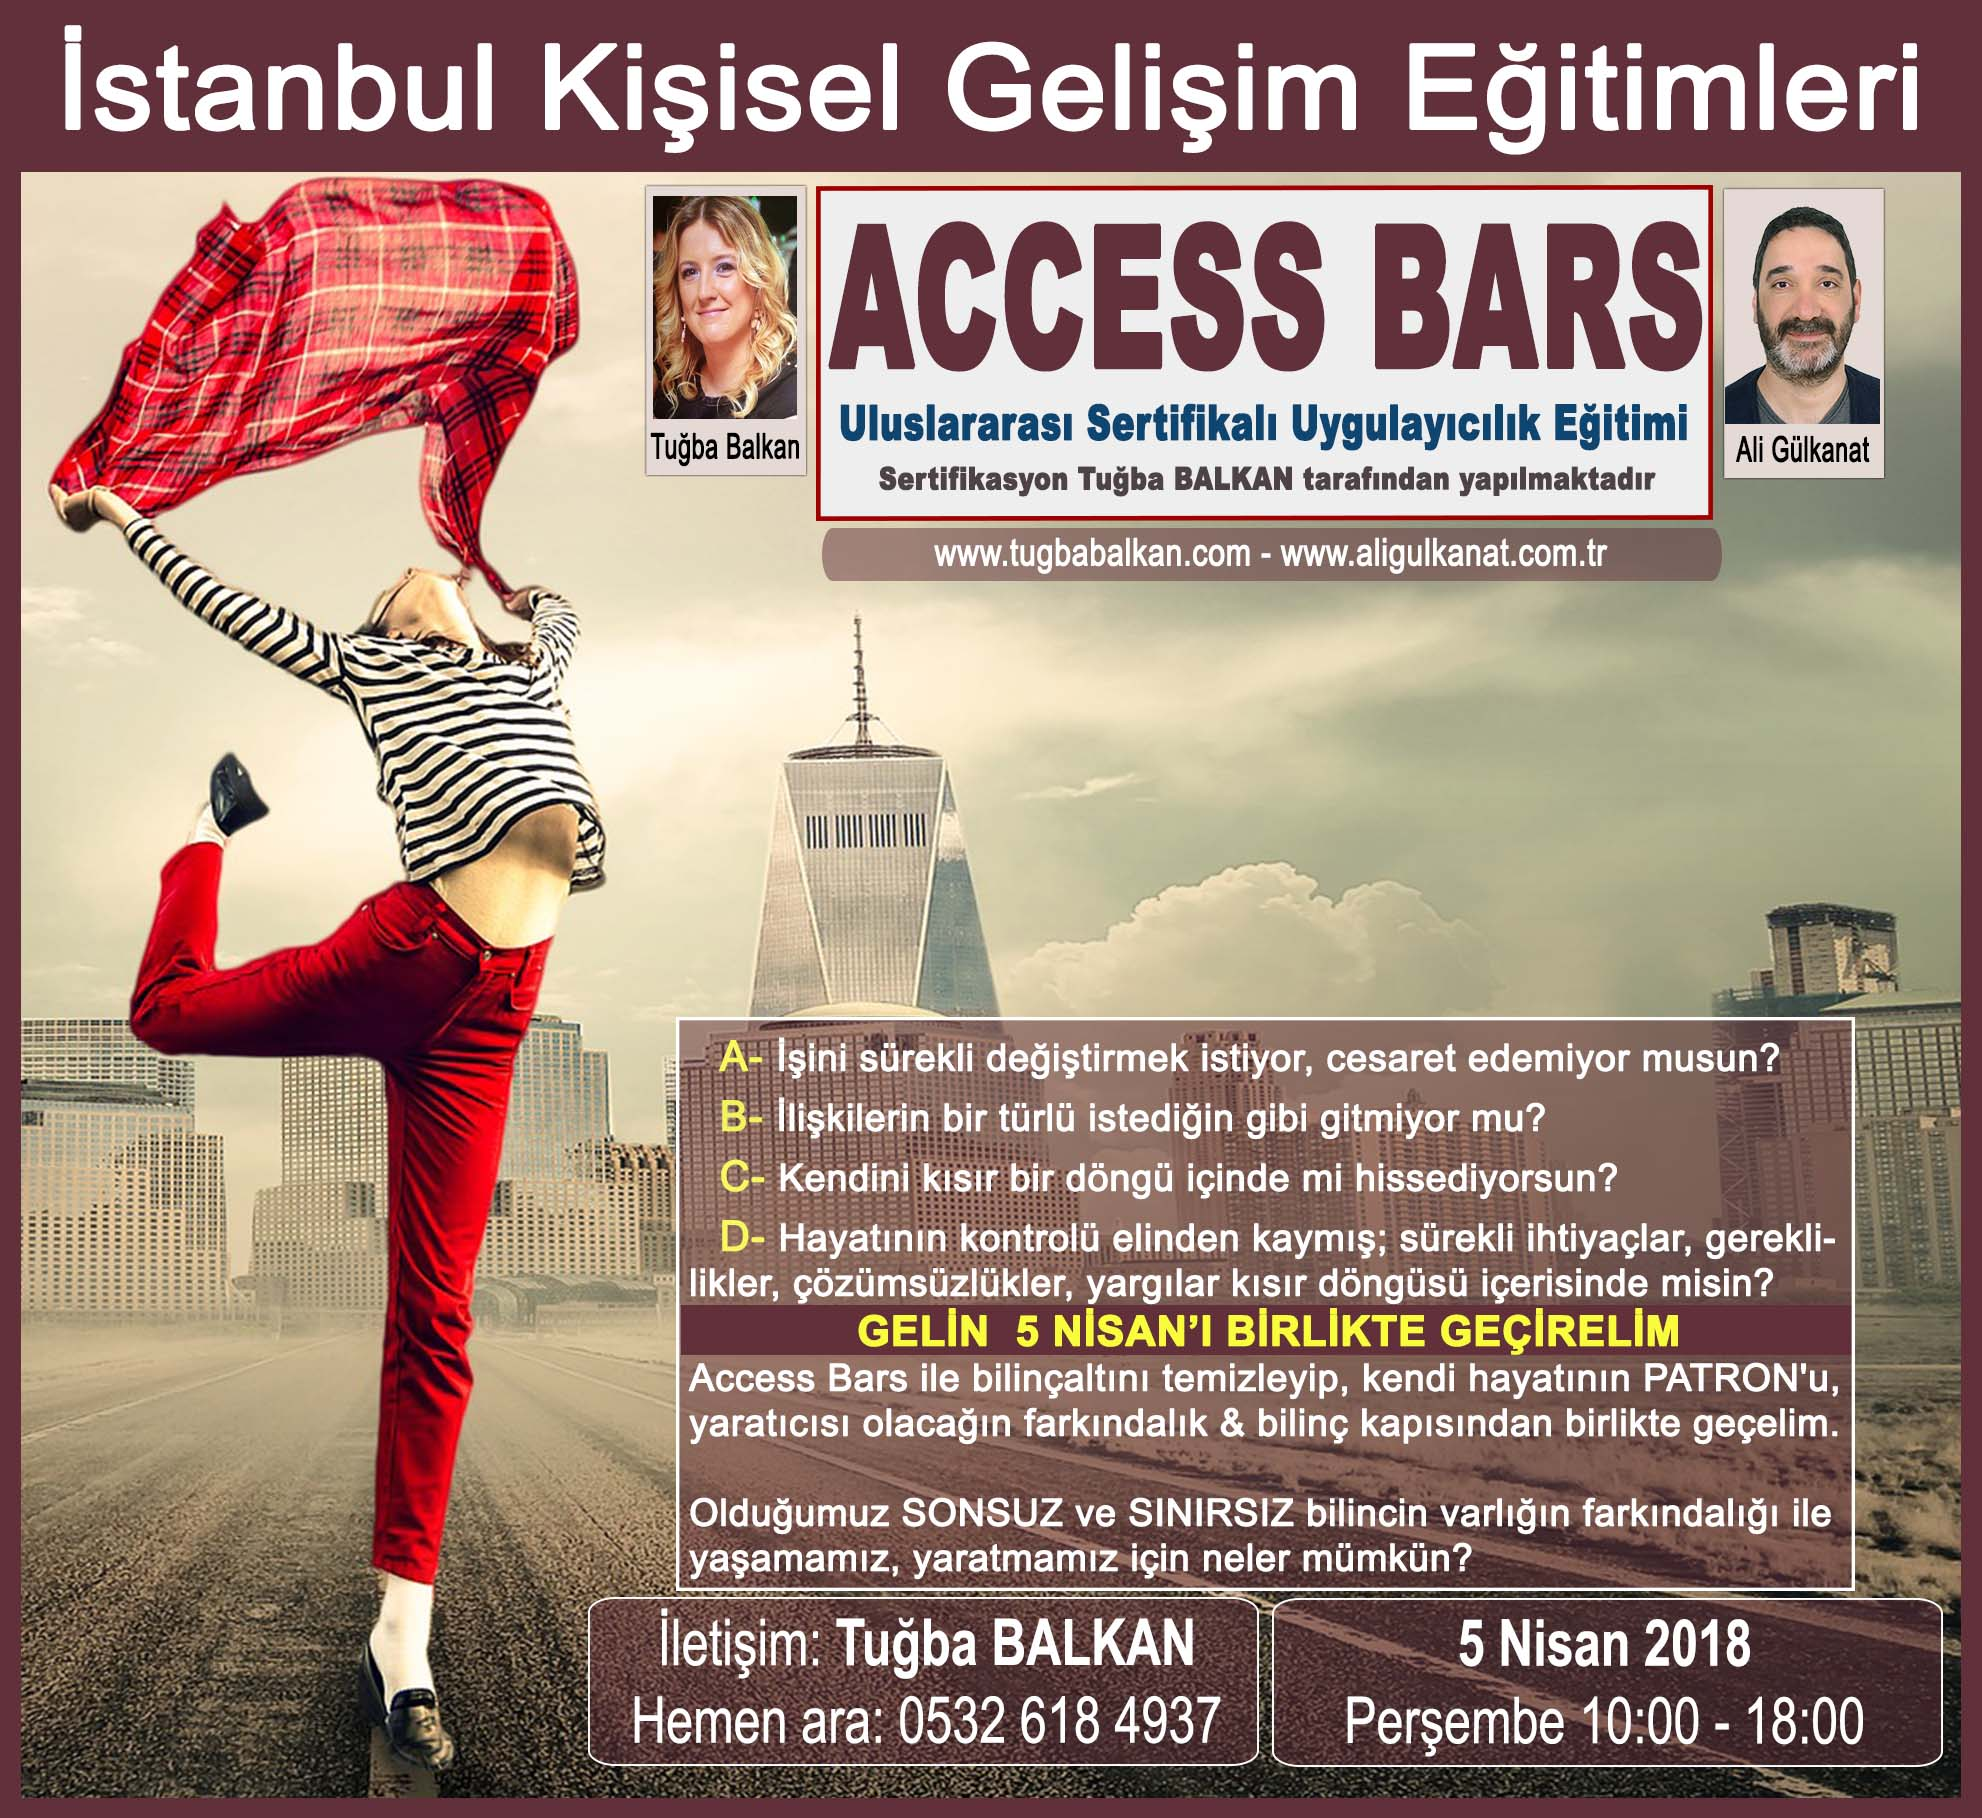 access-bars-tanitim-5-nisan-2018-1